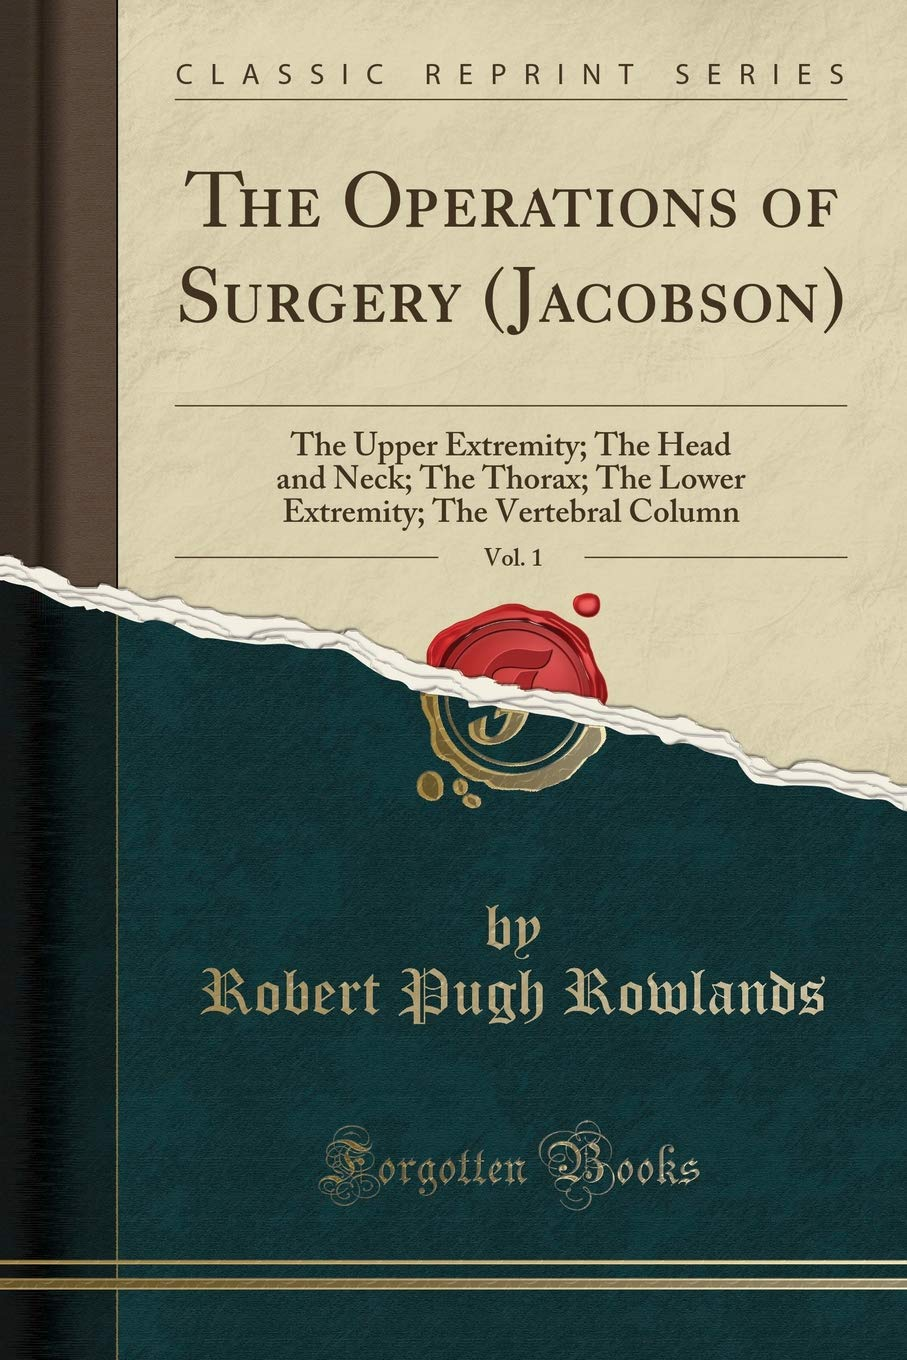 Read Online The Operations of Surgery (Jacobson), Vol. 1: The Upper Extremity; The Head and Neck; The Thorax; The Lower Extremity; The Vertebral Column (Classic Reprint) ebook